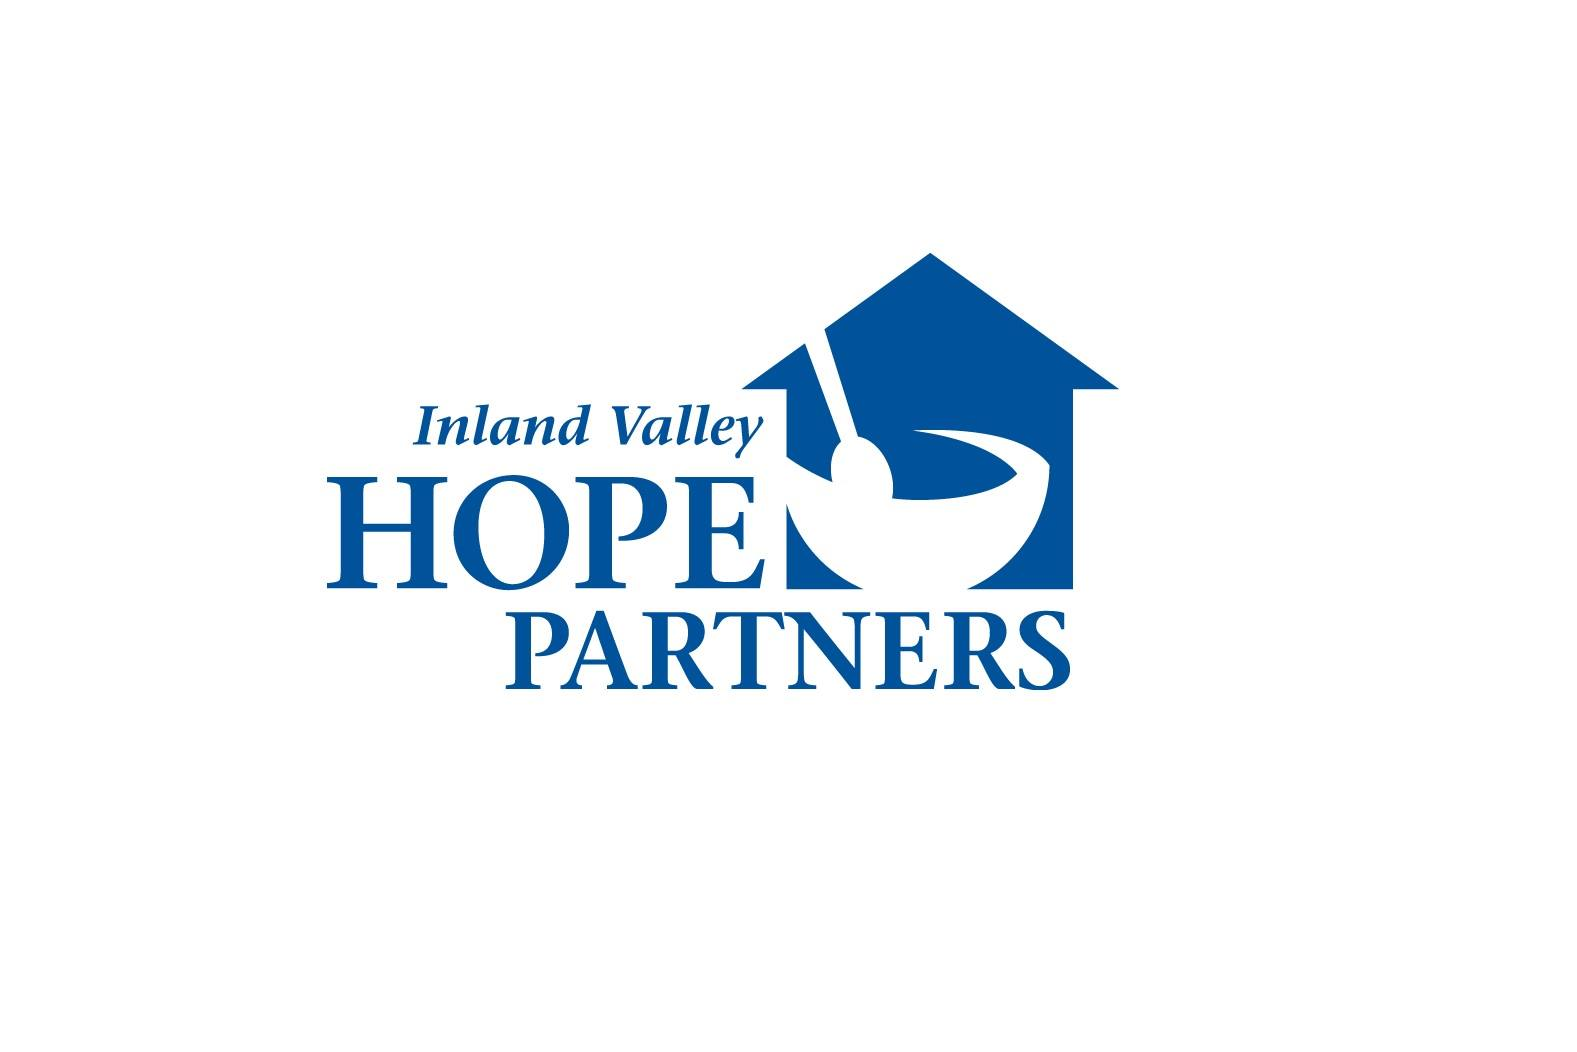 Inland Valley Hope Partners - Our House Shelter